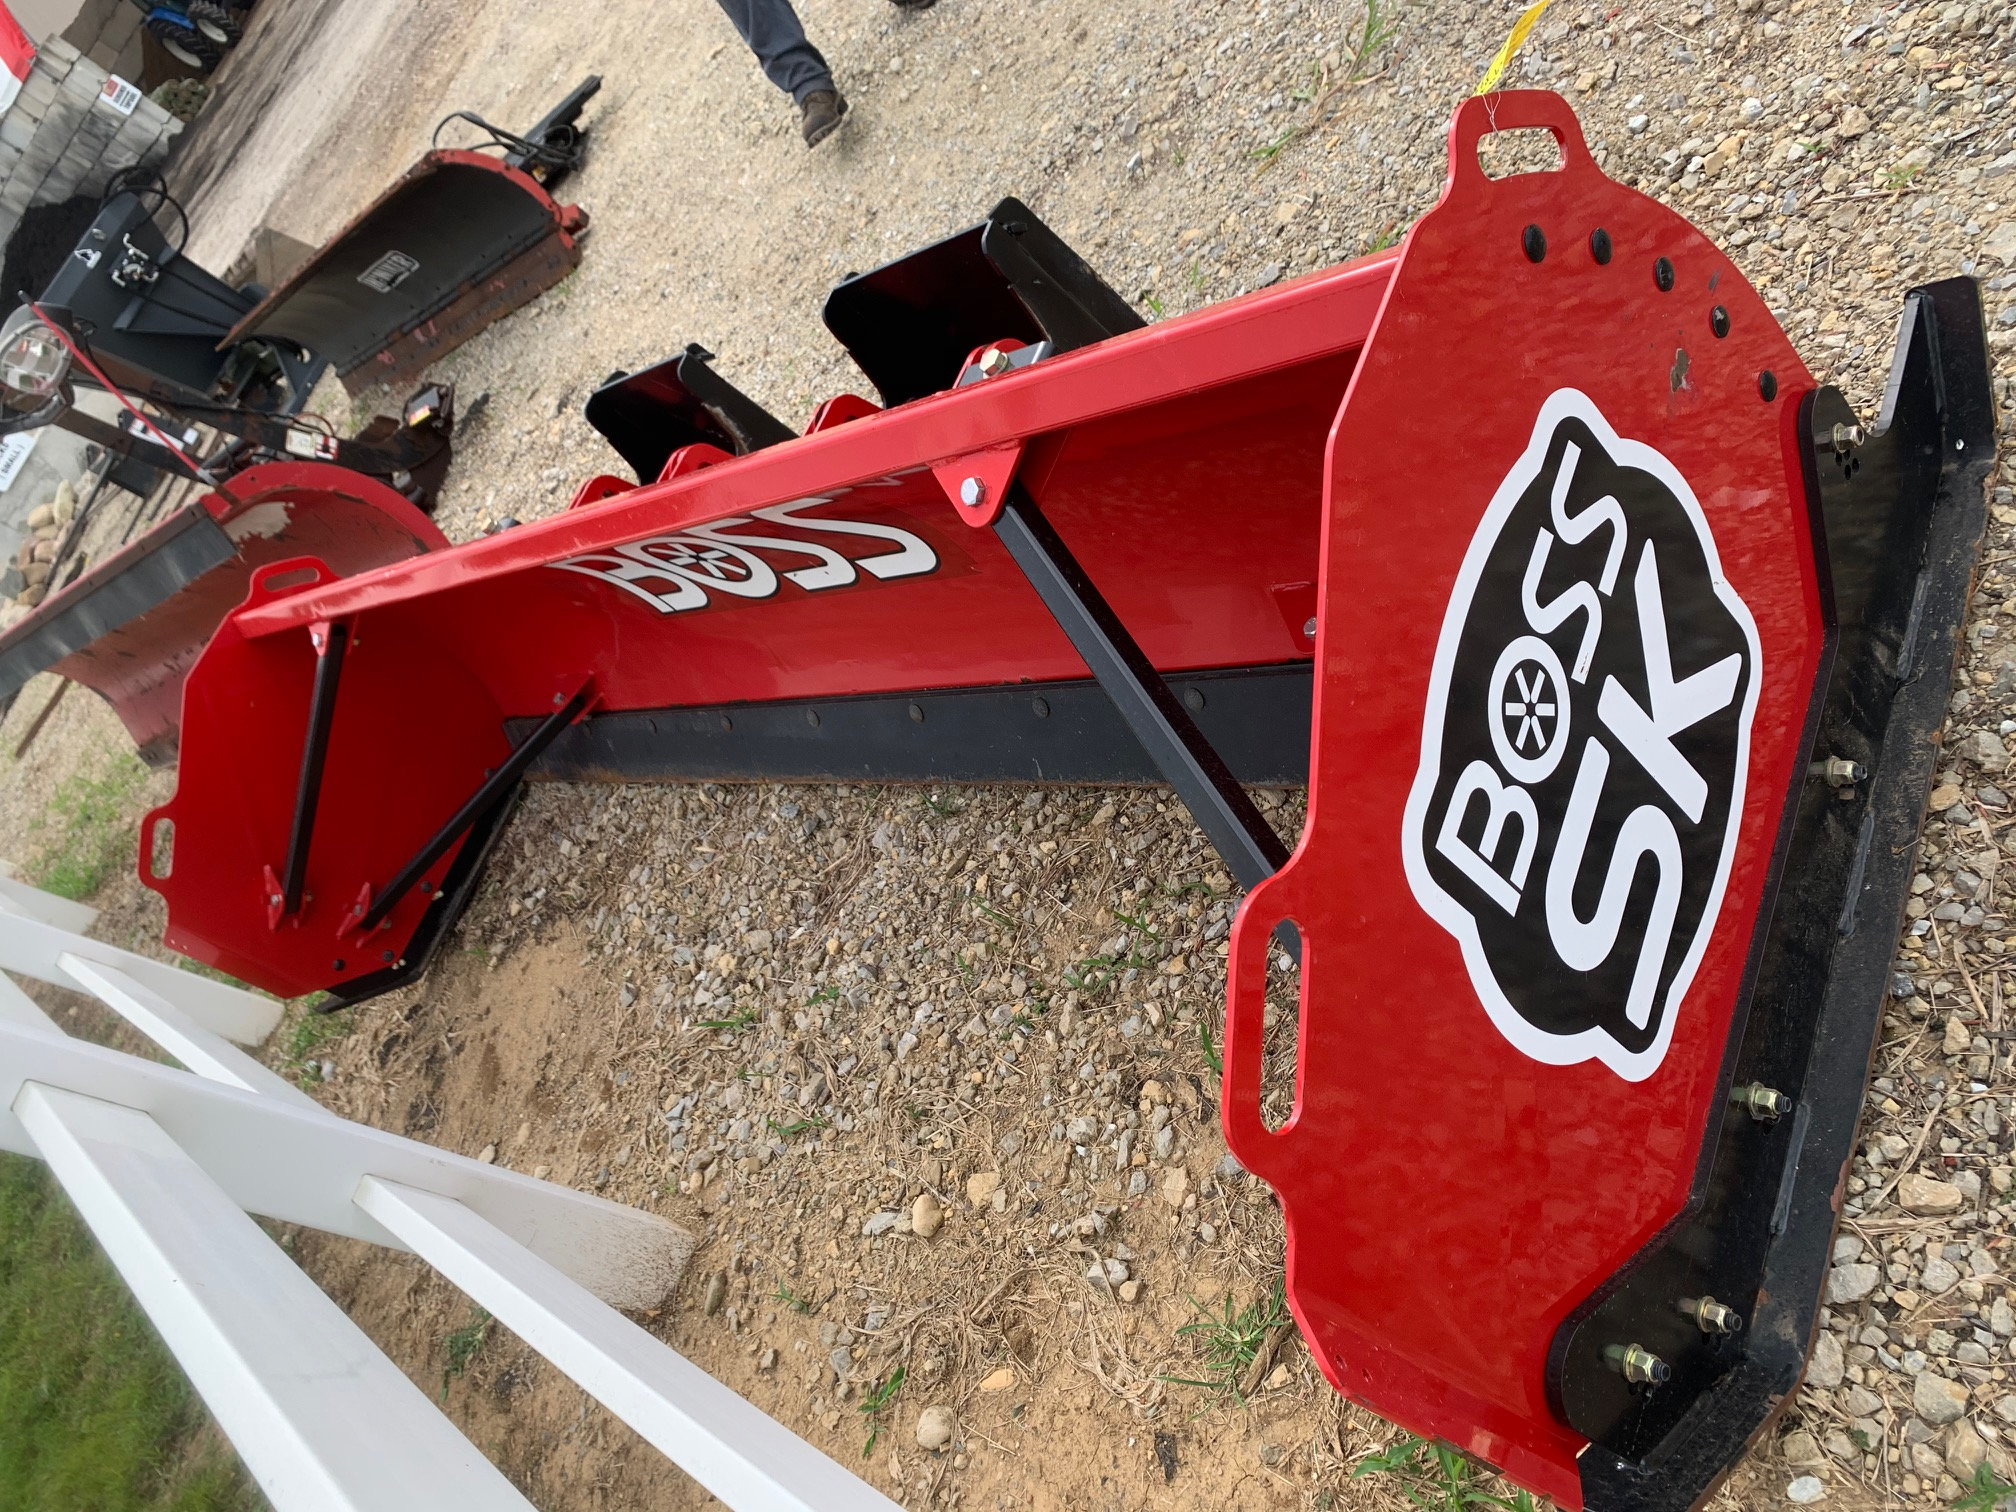 2020 Boss Demo SK10 Box Plow #5 (1)